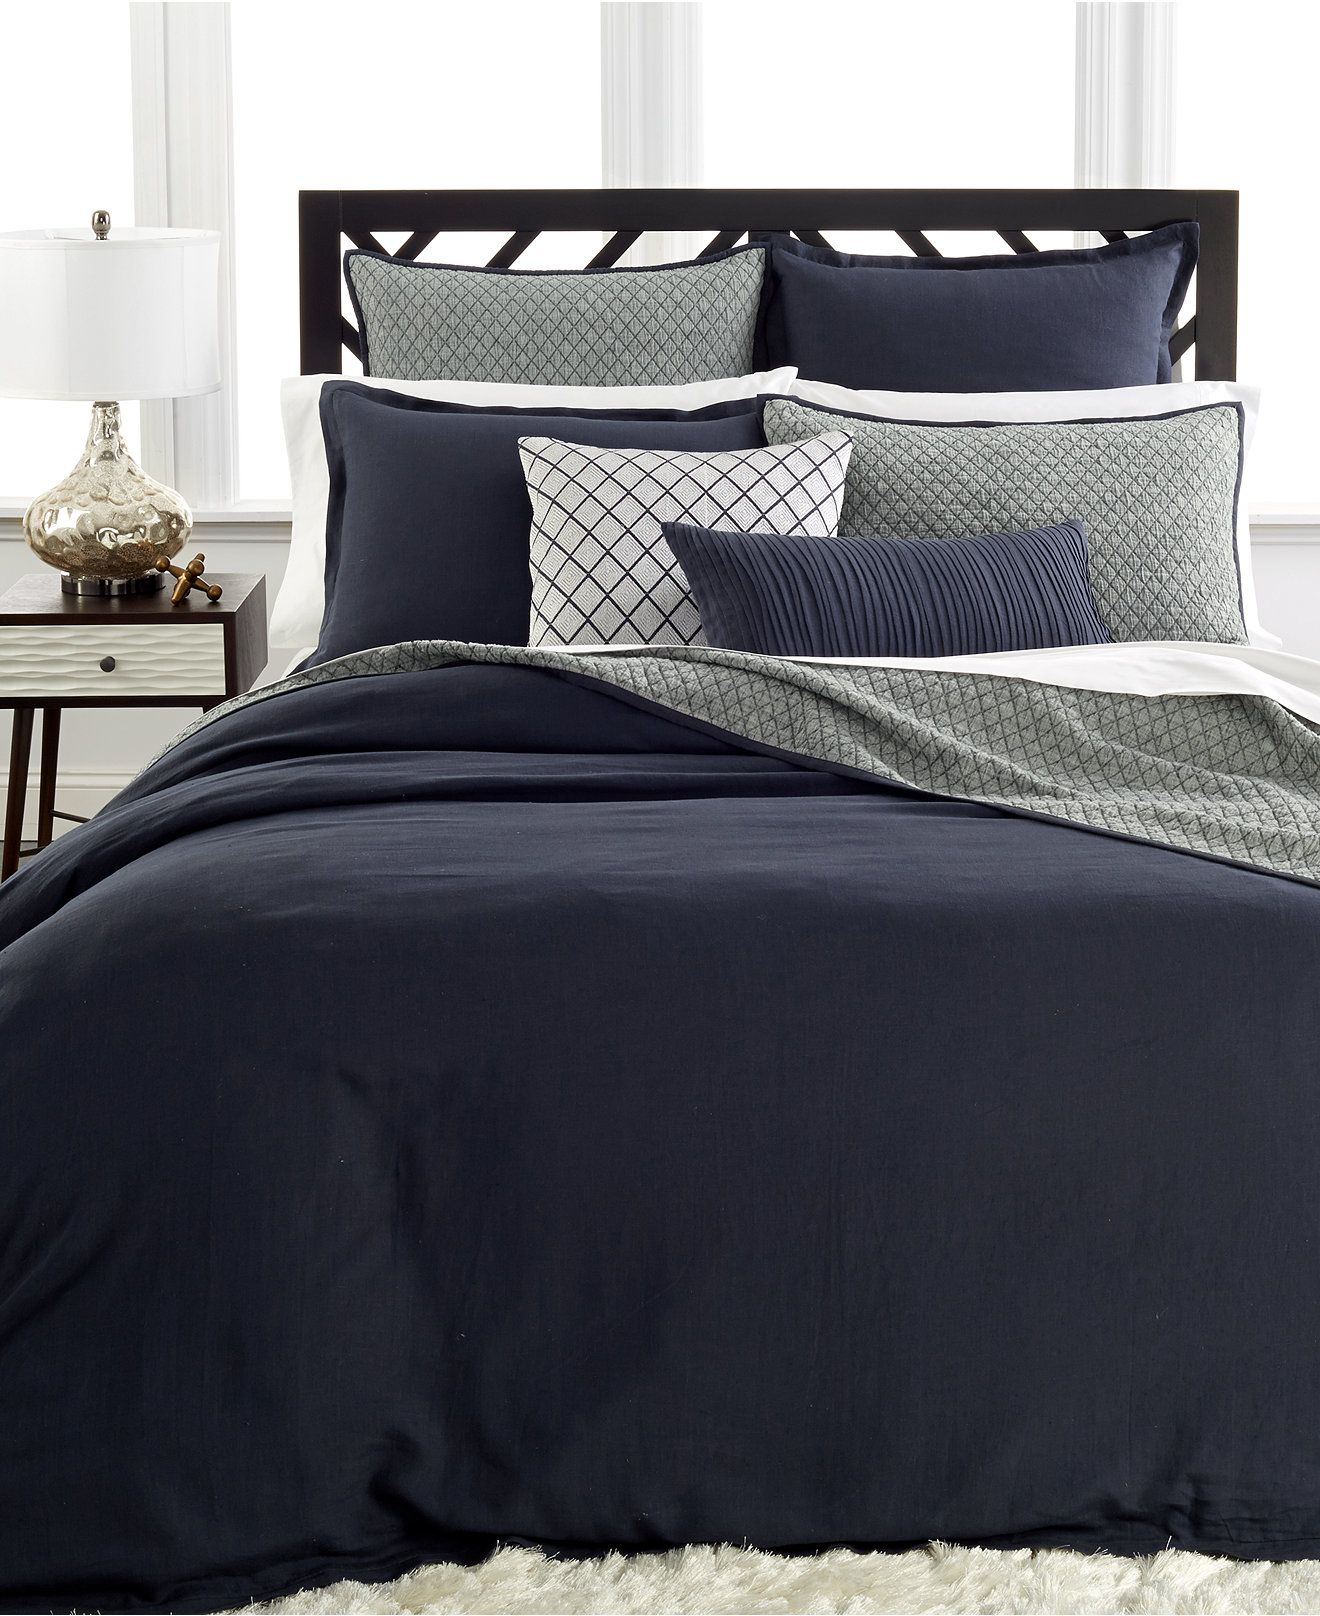 Closeout Hotel Collection Linen Navy Bedding Collection Bedding